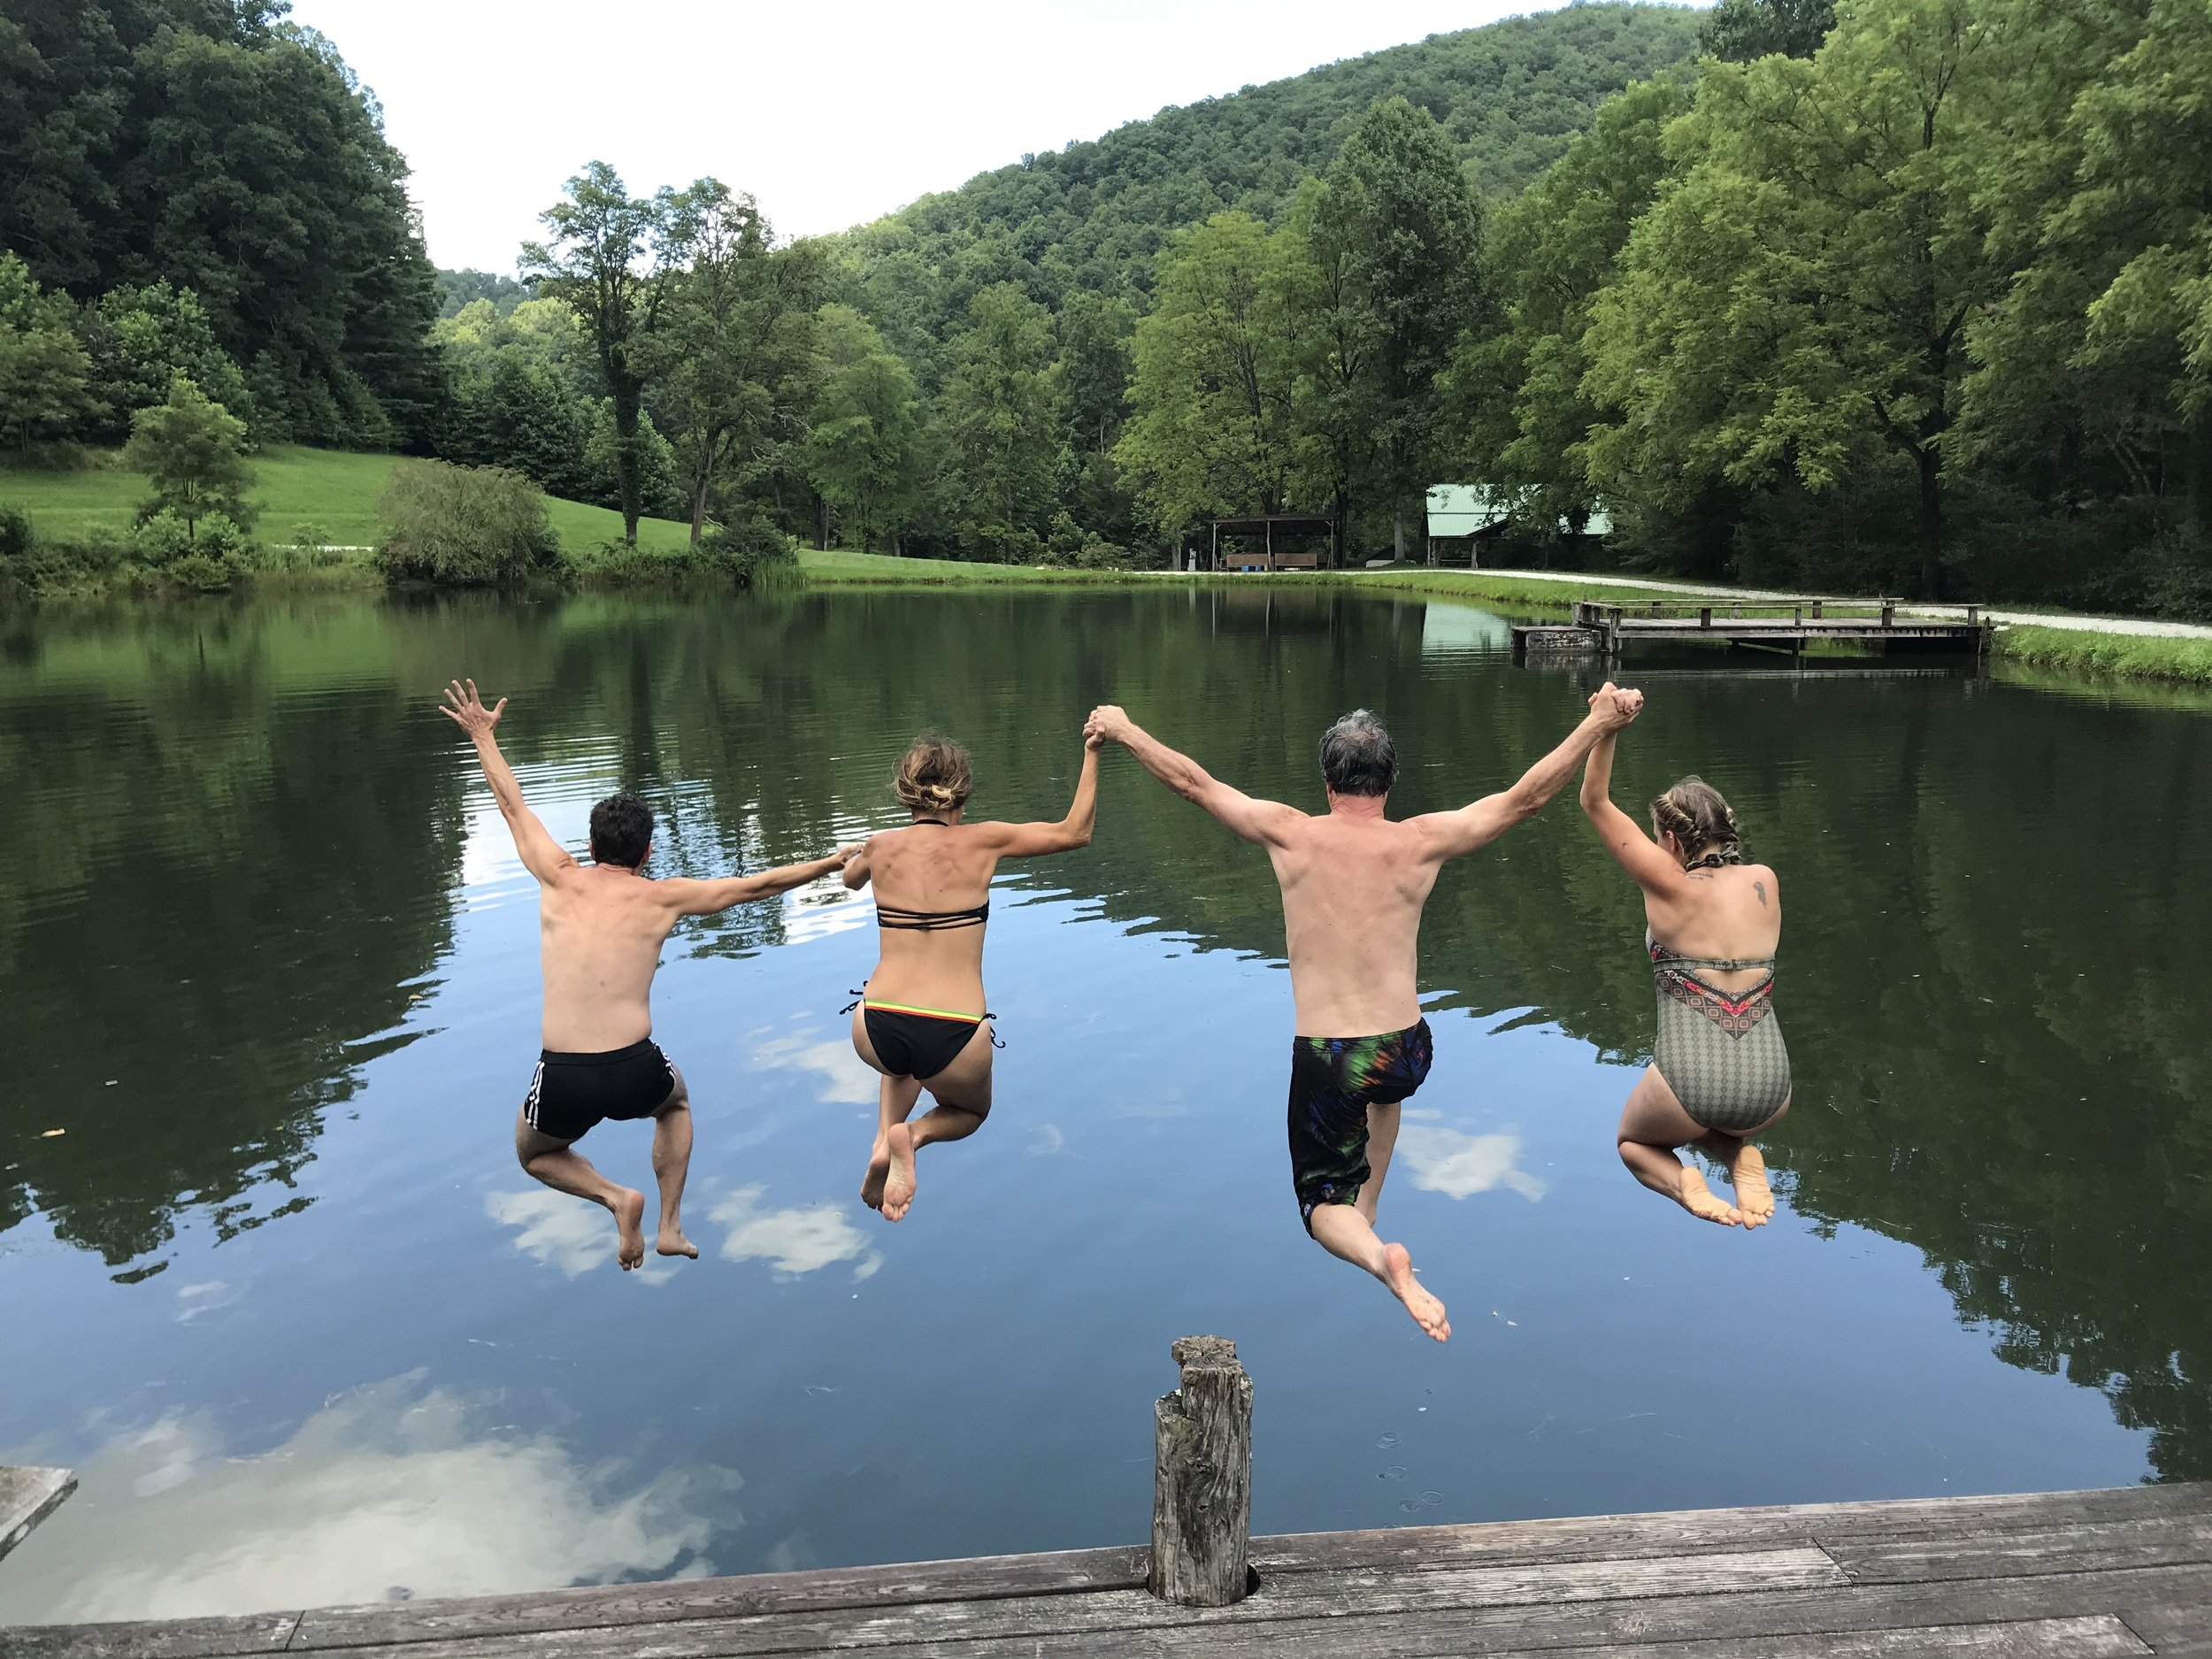 deerfrields lake jump.jpg